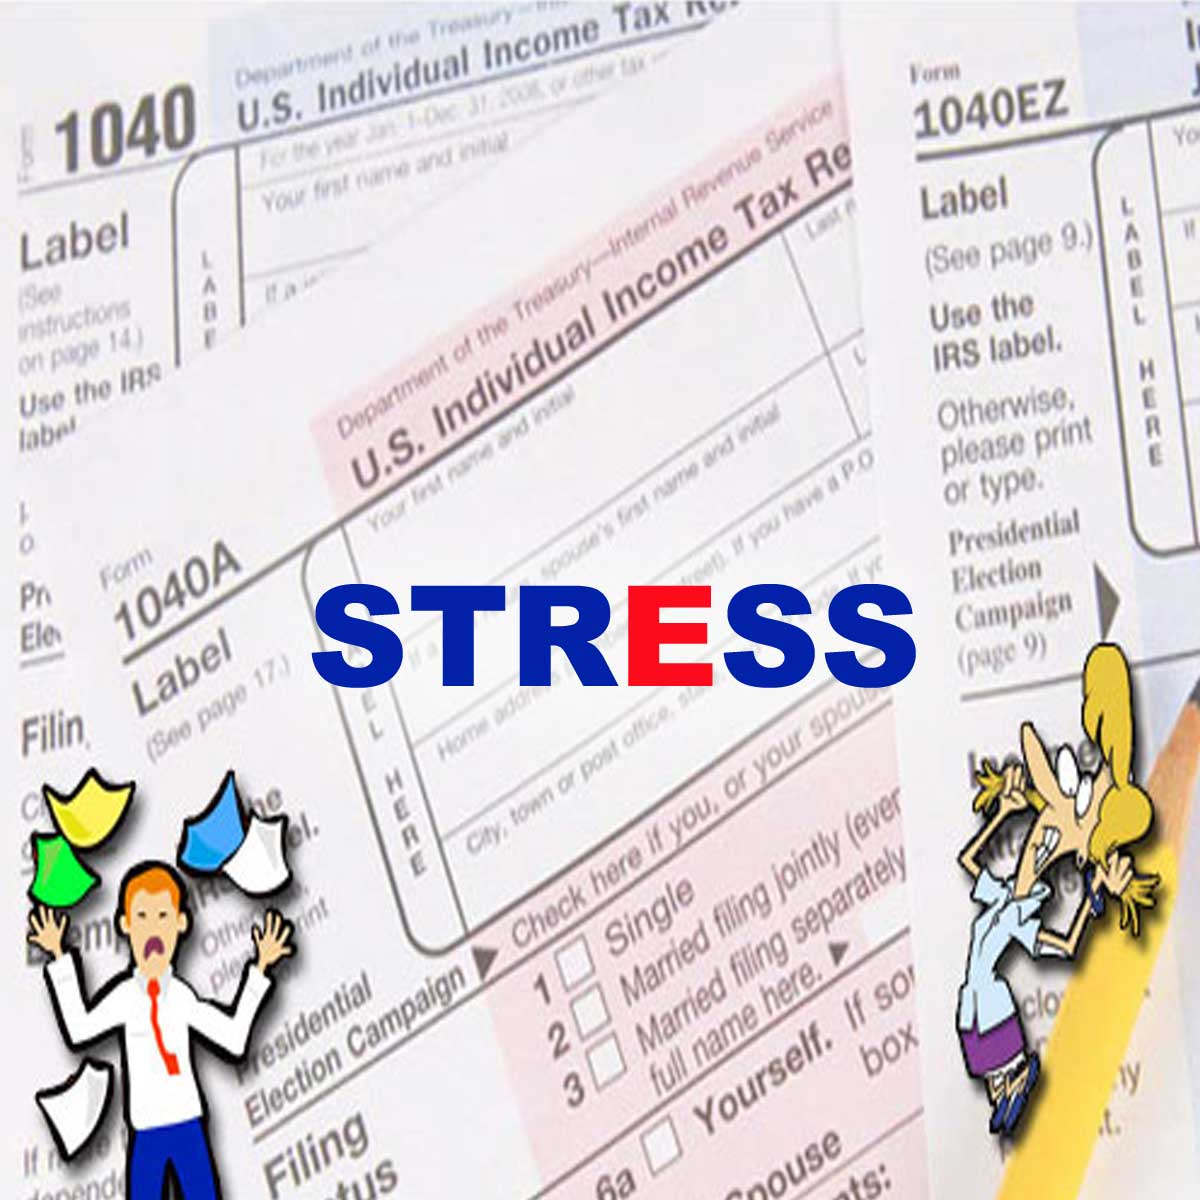 Top 10 Ways To Deal With Tax Season Stress